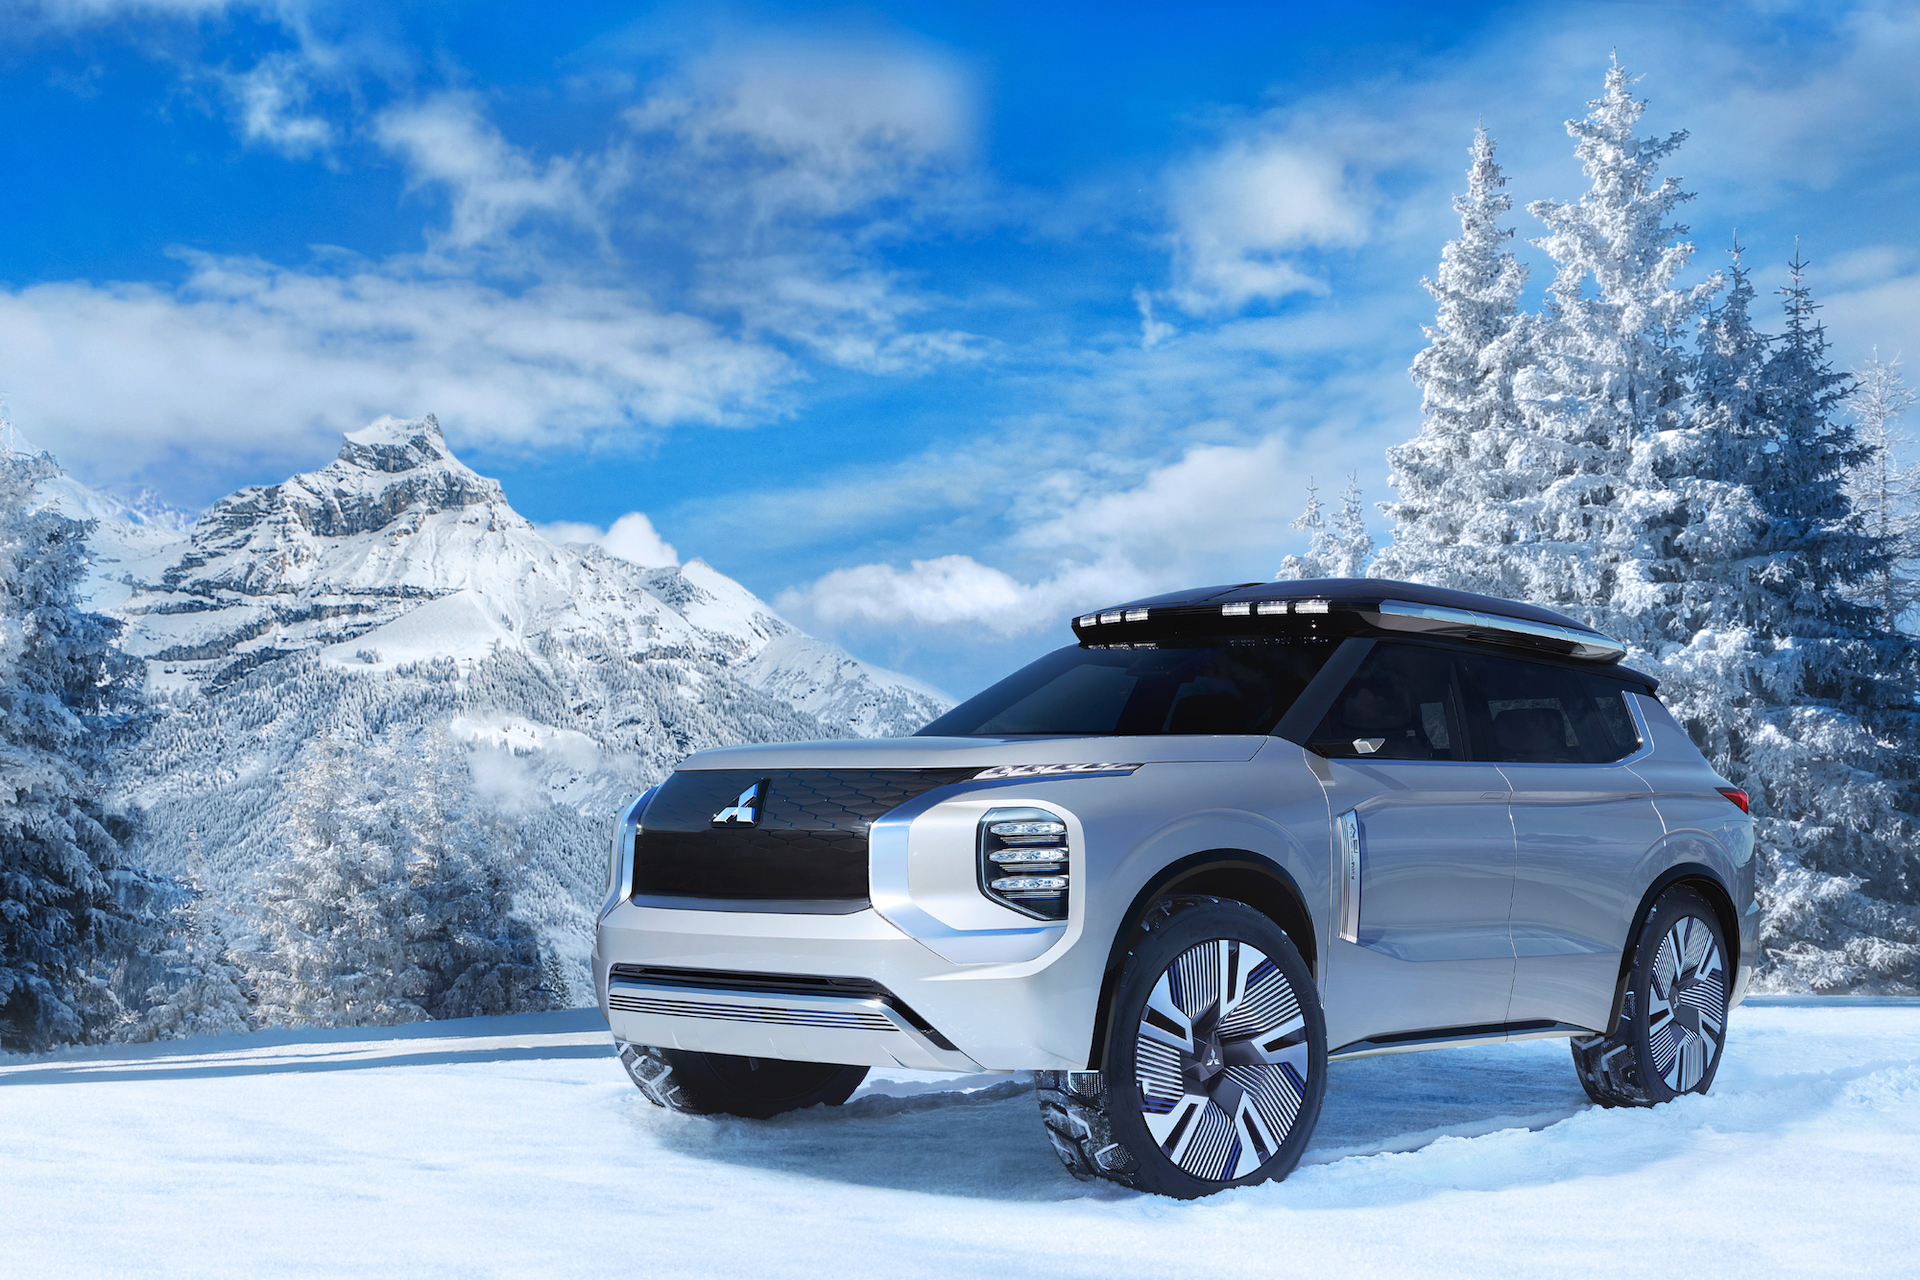 Mitsubishi Engelberg Suv Concept May Preview Outlander Phev Replacement